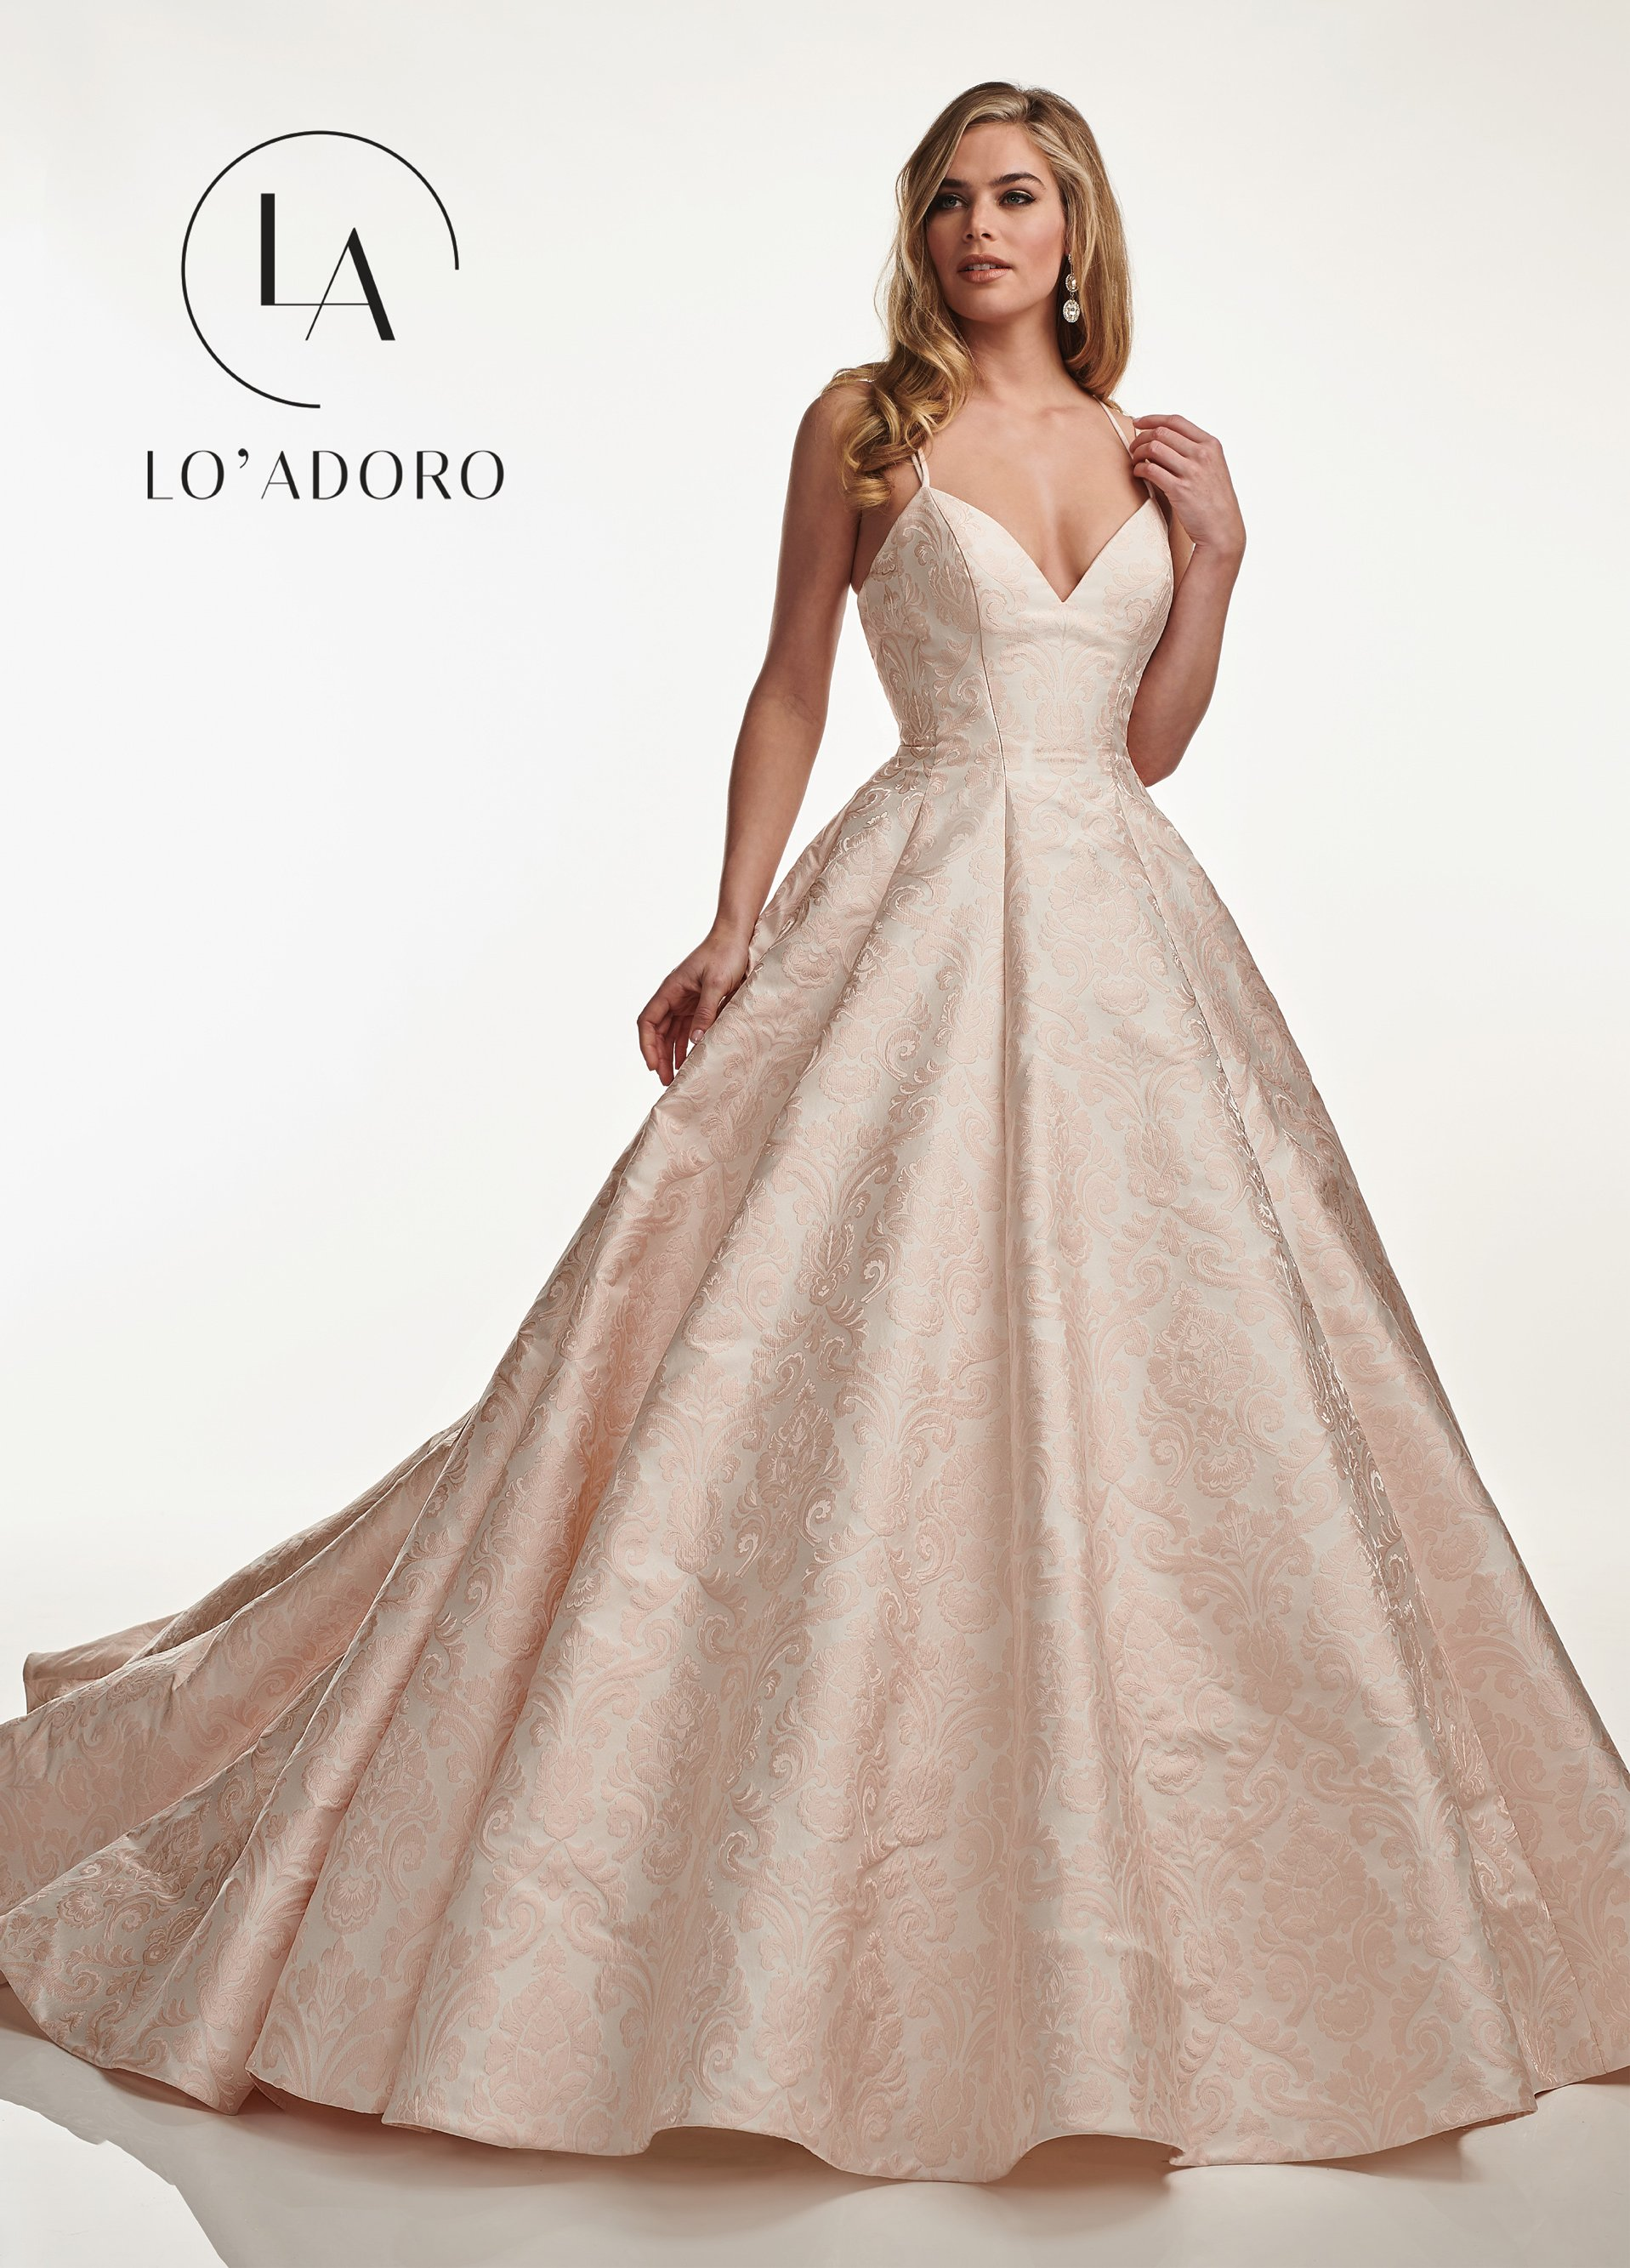 V-Neck Ball Gowns Lo' Adoro Bridal in Blush Color